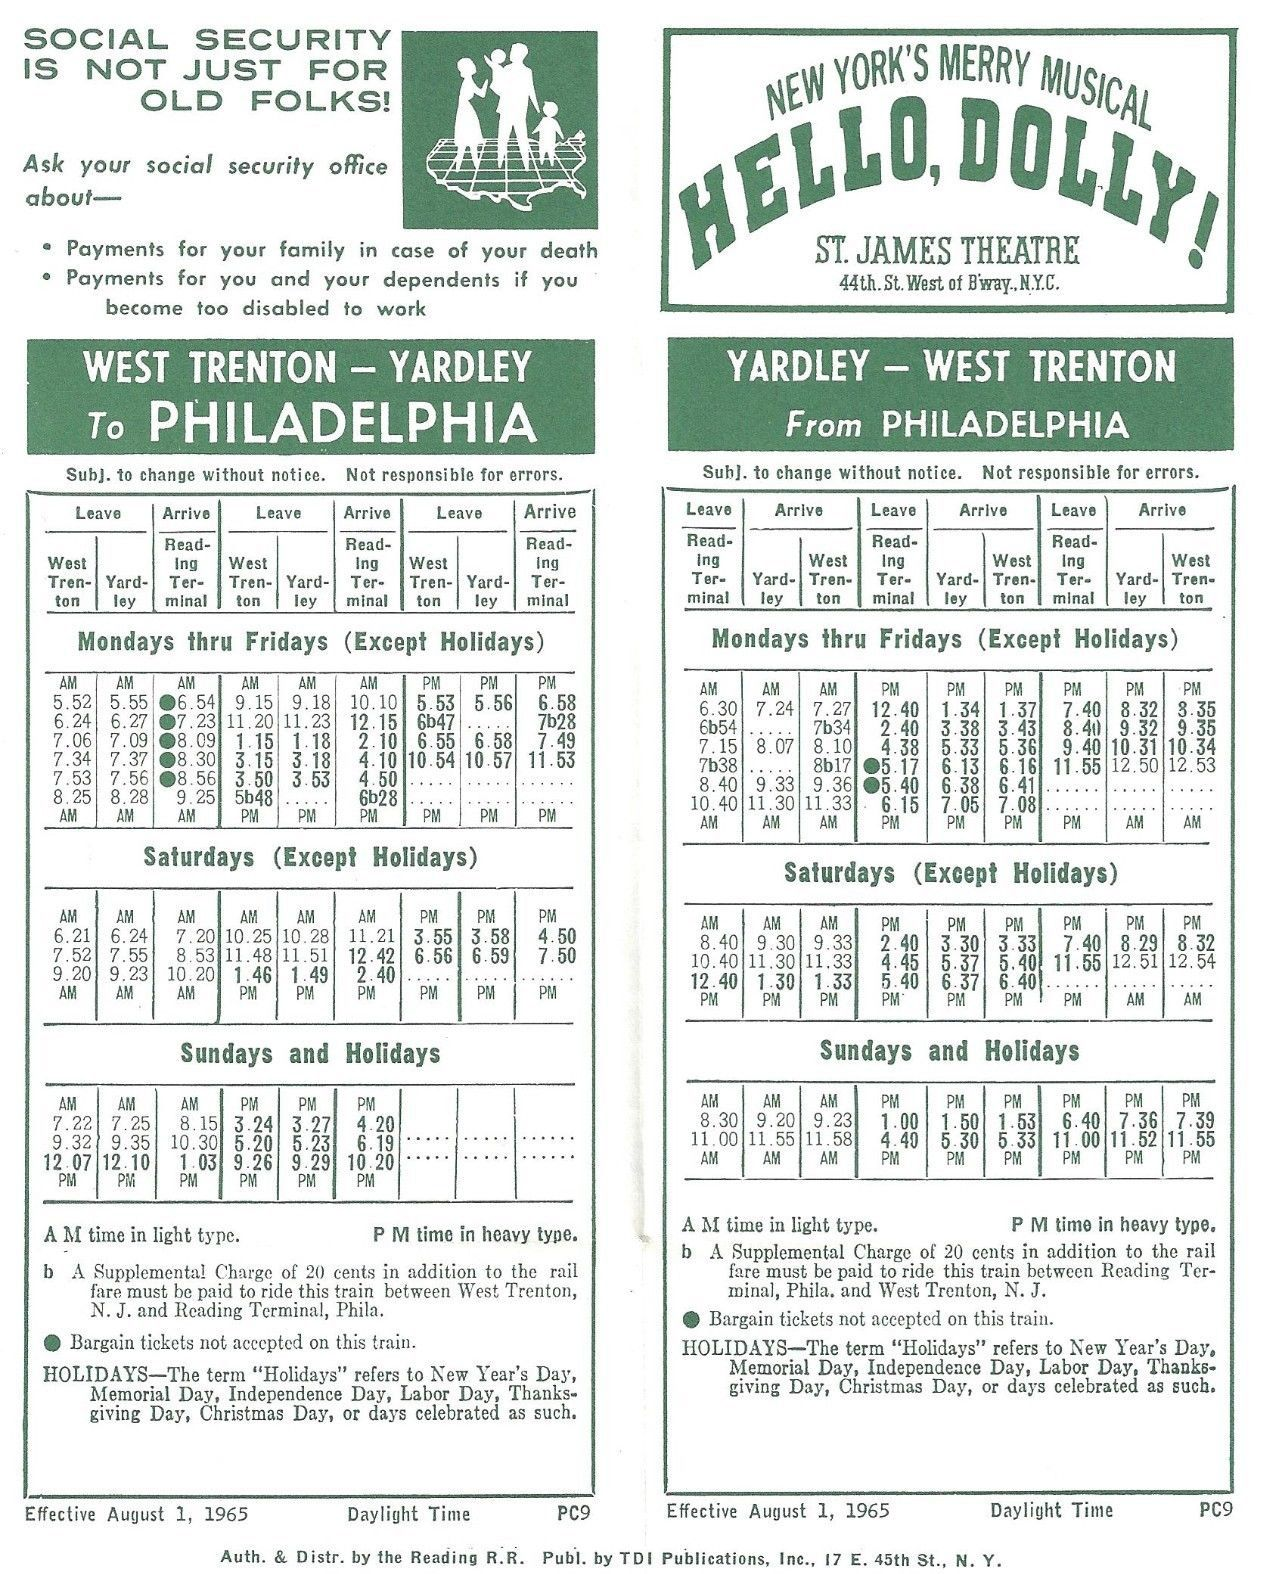 hello, dolly! ad reading railway timetable for the west trenton to